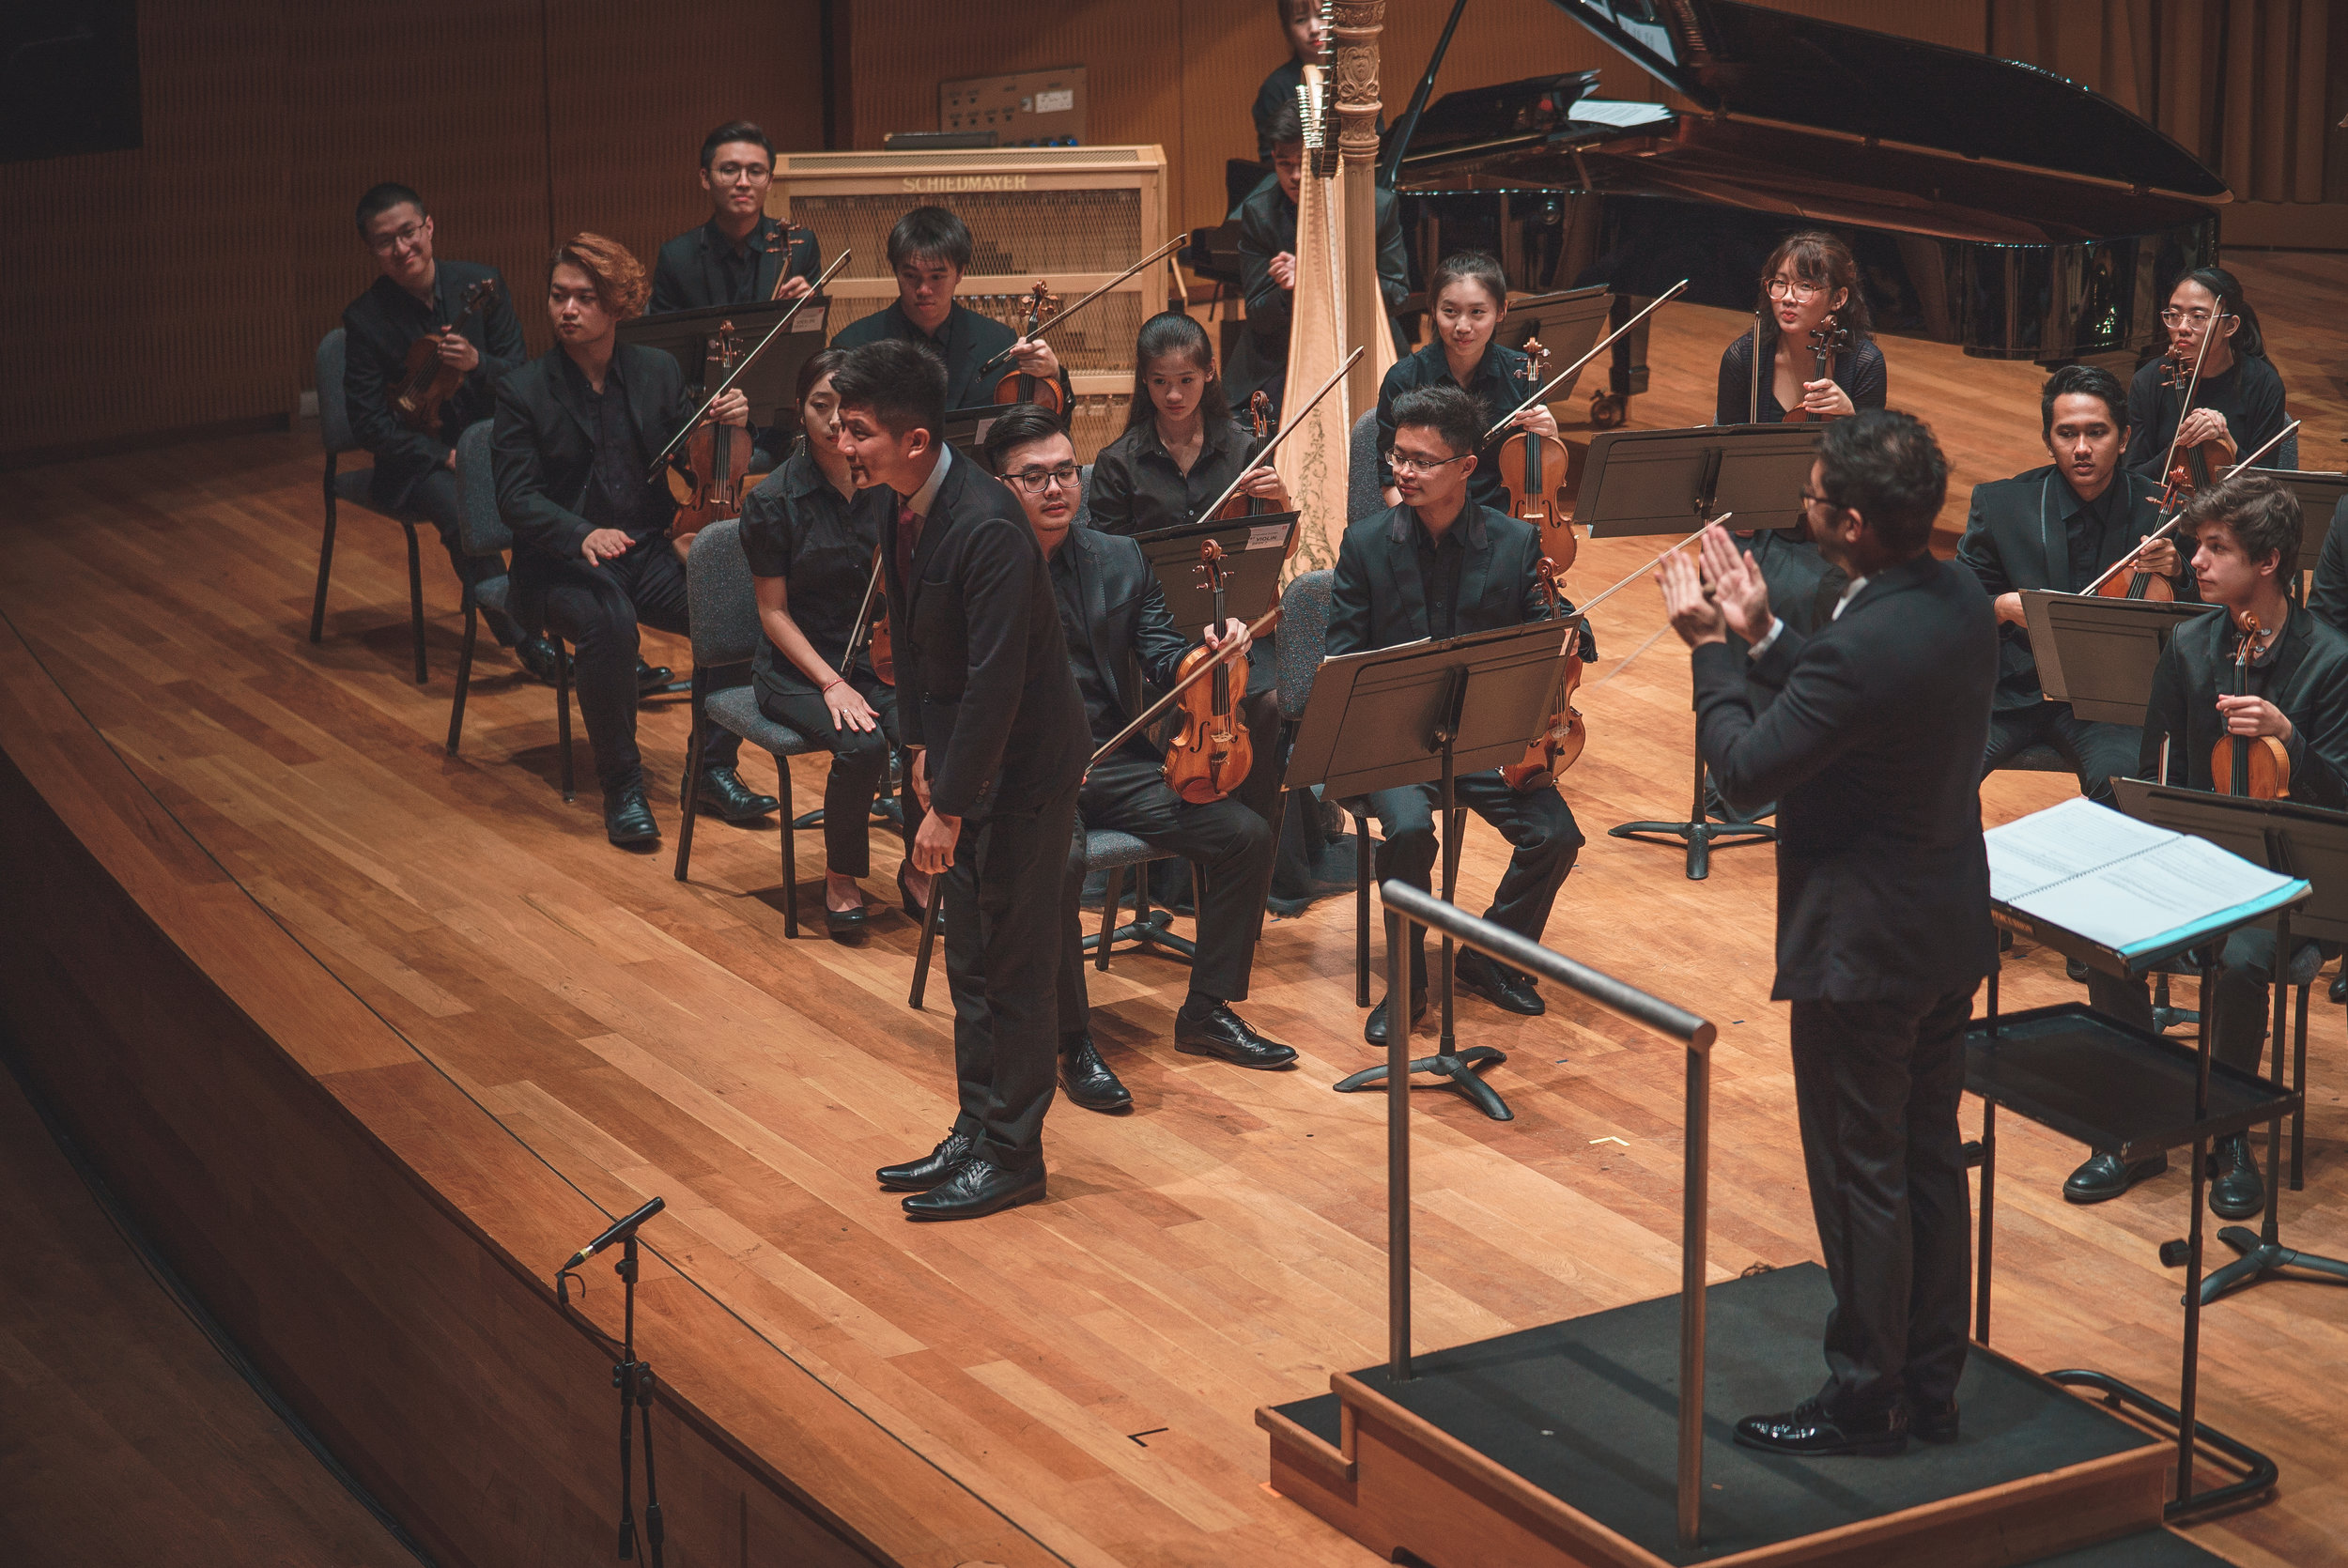 Jian Han taking a bow at the 2018 Conservatory Concerto Competition, where the Conservatory Orchestra premiered his work  Let me run 'til I fade away .